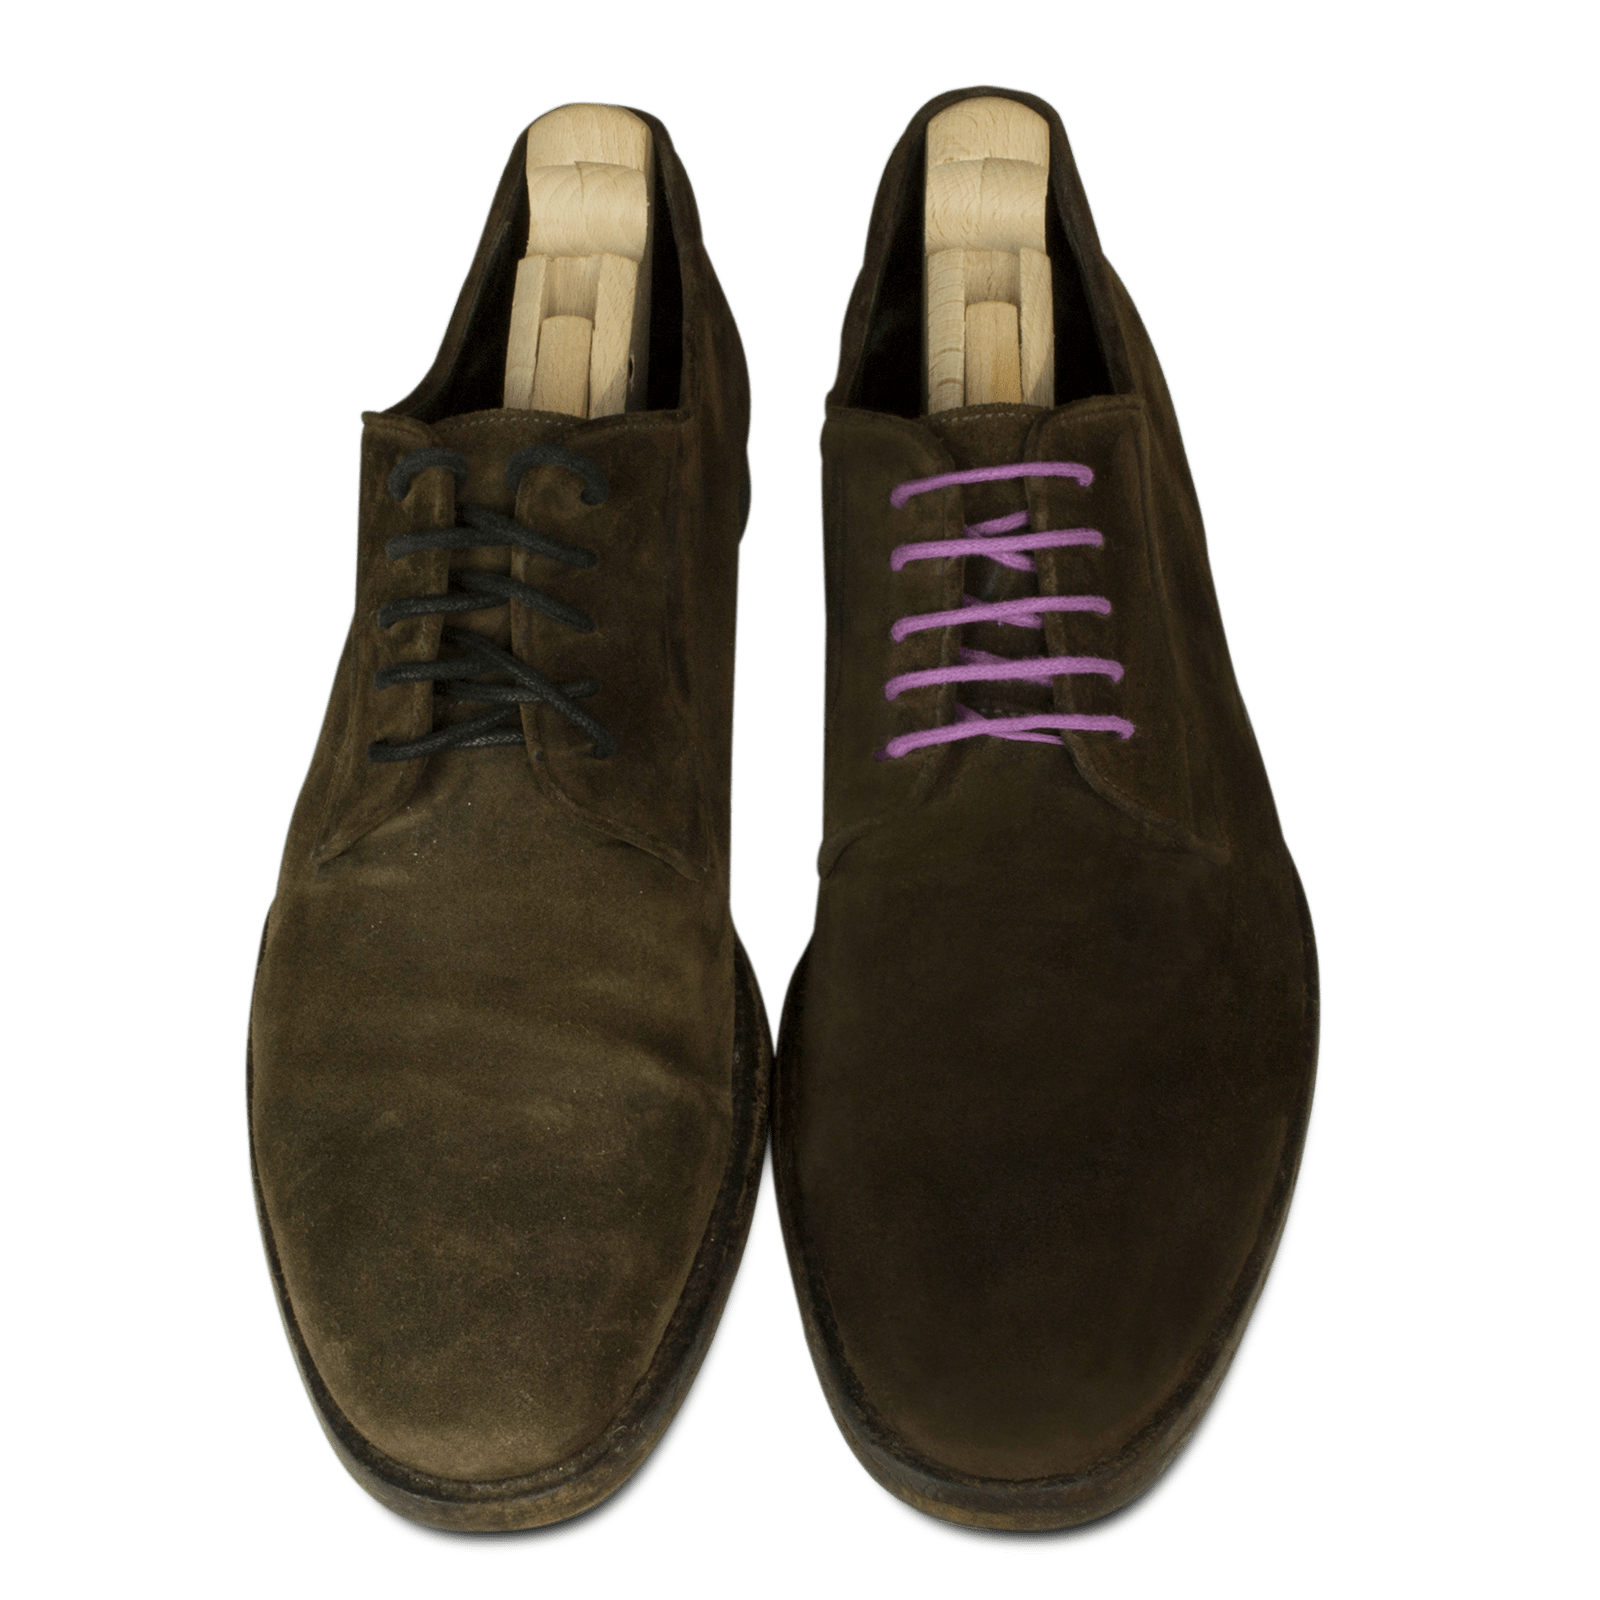 How to restore suede shoes using woly